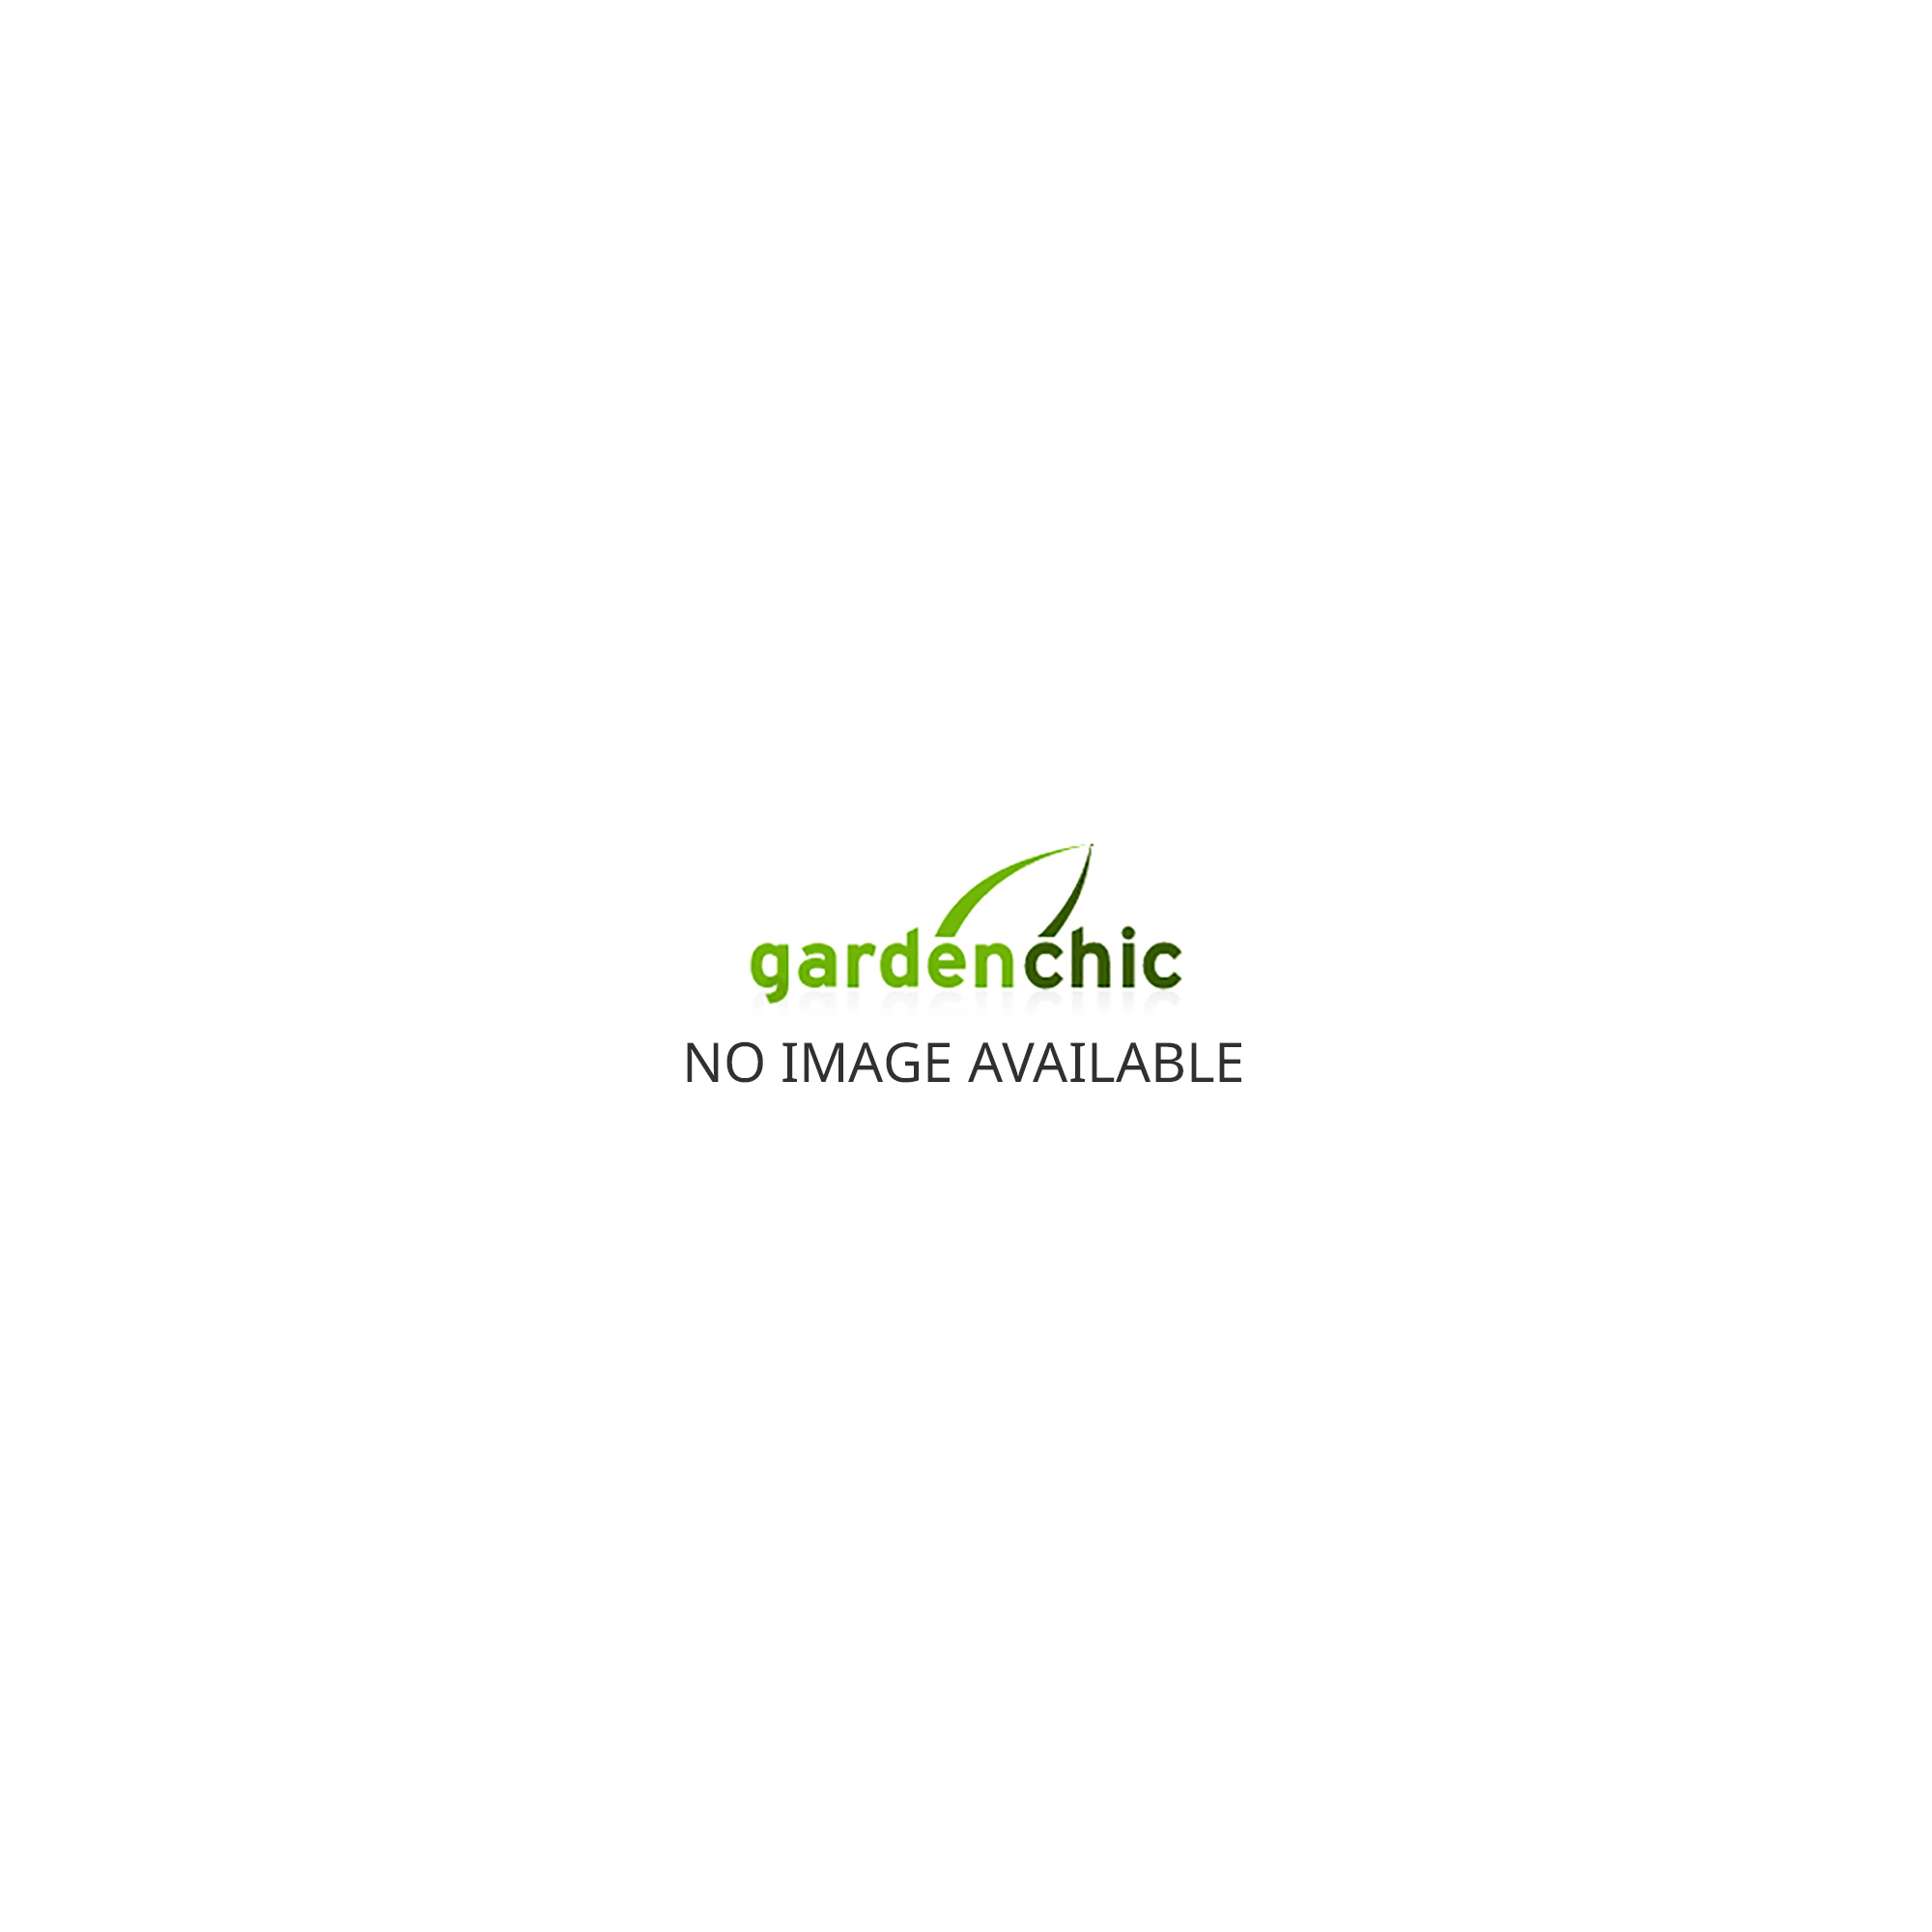 Venus 2500 6ft x 4ft Greenhouse - Silver FREE Matching Base until APRIL 2018